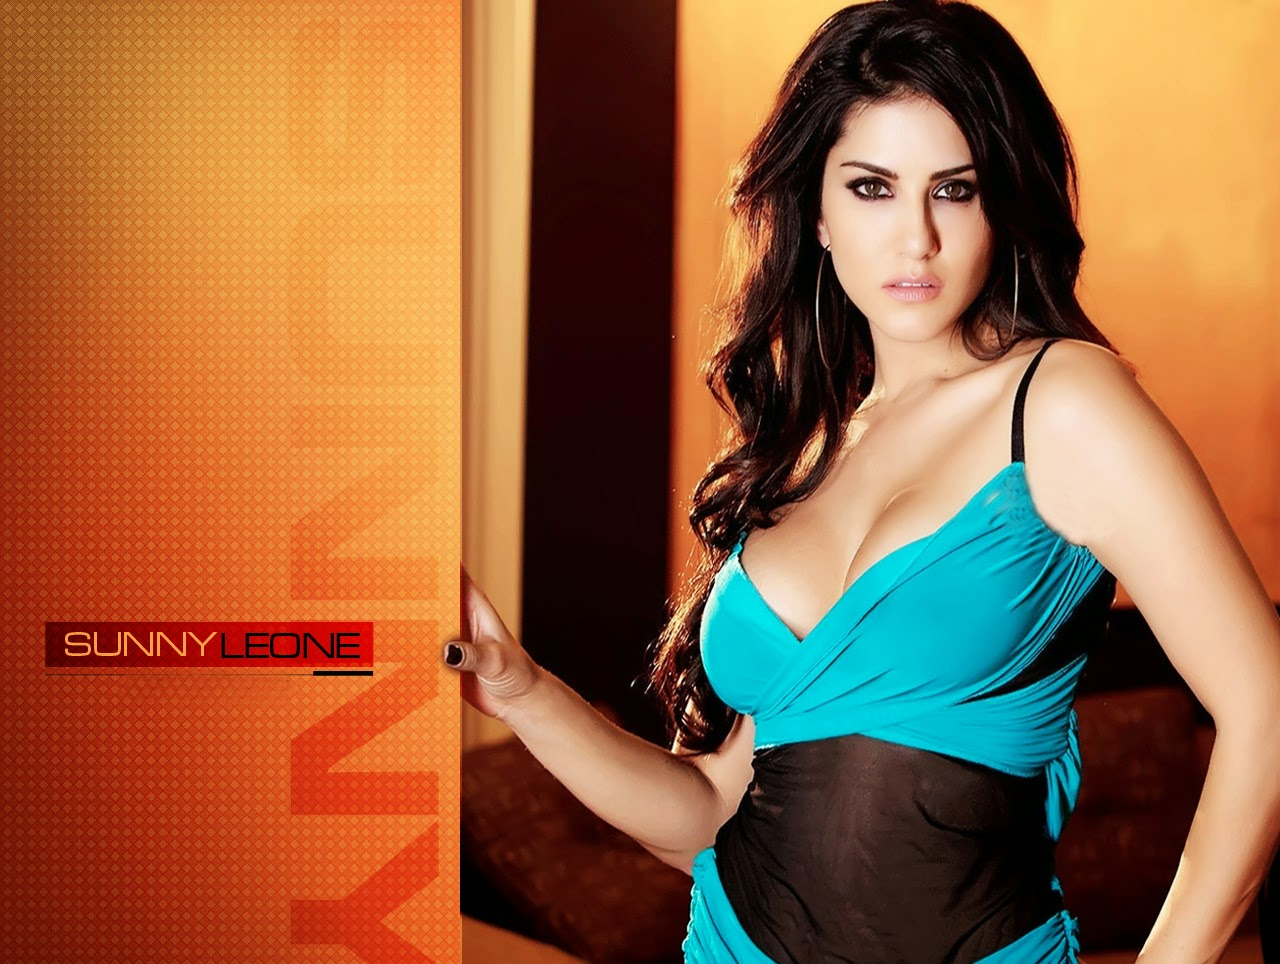 Global Pictures Gallery Sunny Leone Full Hd Wallpapers-1530